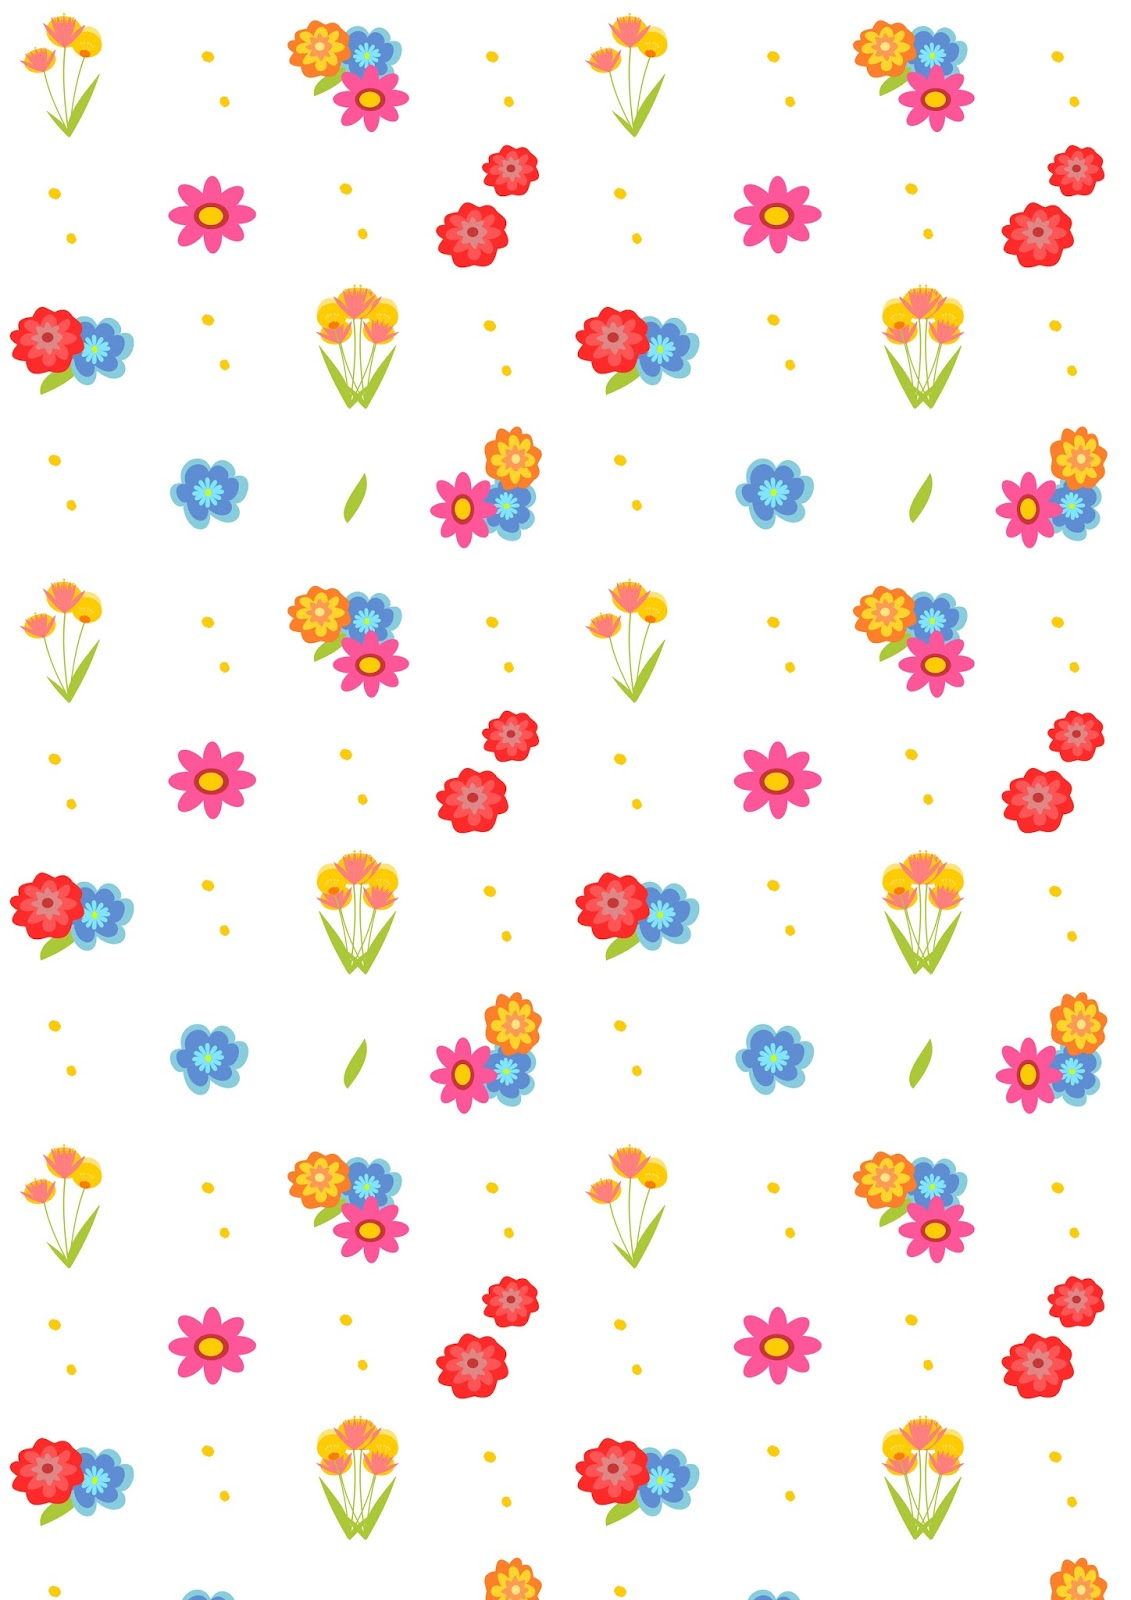 This is a graphic of Selective Free Scrapbook Paper Printable